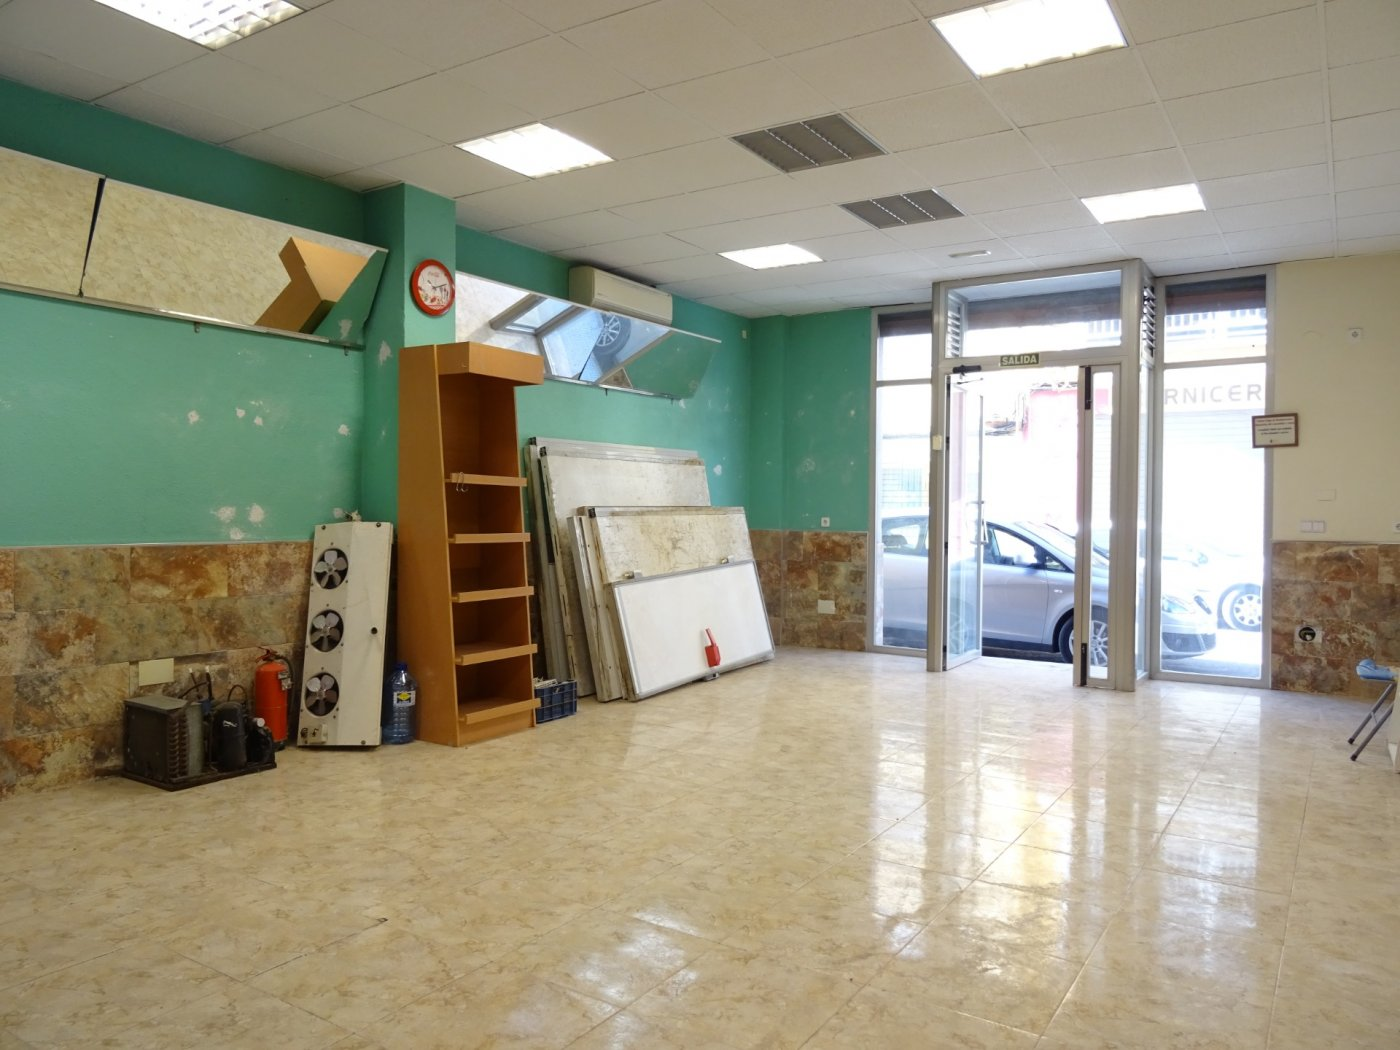 Local comercial entrar a vivir  en Cartagena